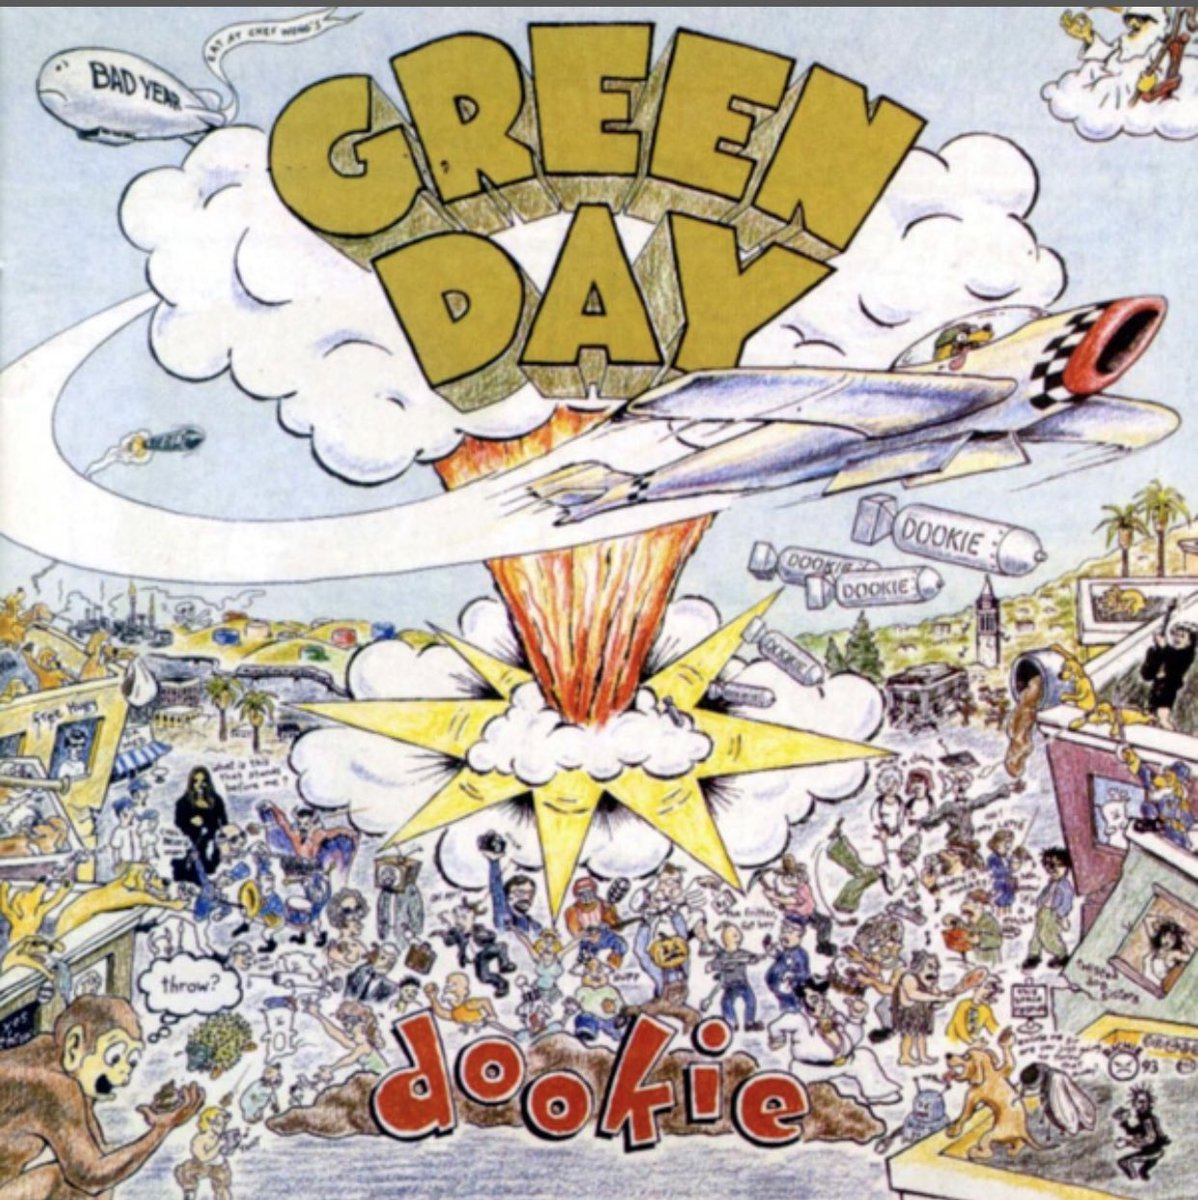 25 years ago my life changed... for the better. Thanks @GreenDay @billiejoe  @trecool @MikeDirnt https://t.co/3ATEc4J4tJ